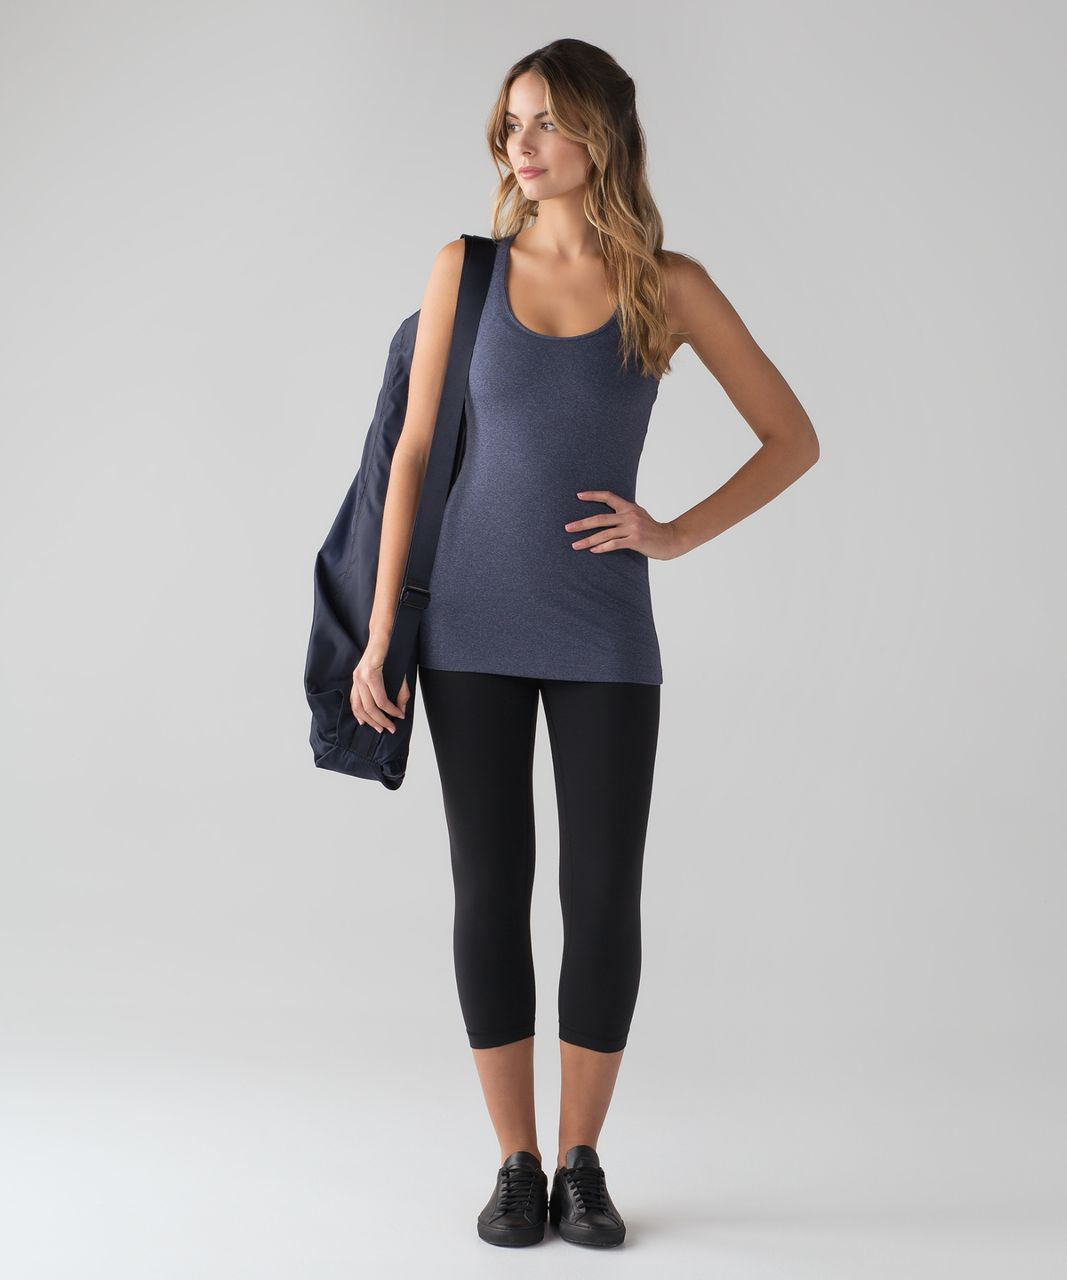 Lululemon Cool Racerback - Heathered Deep Navy